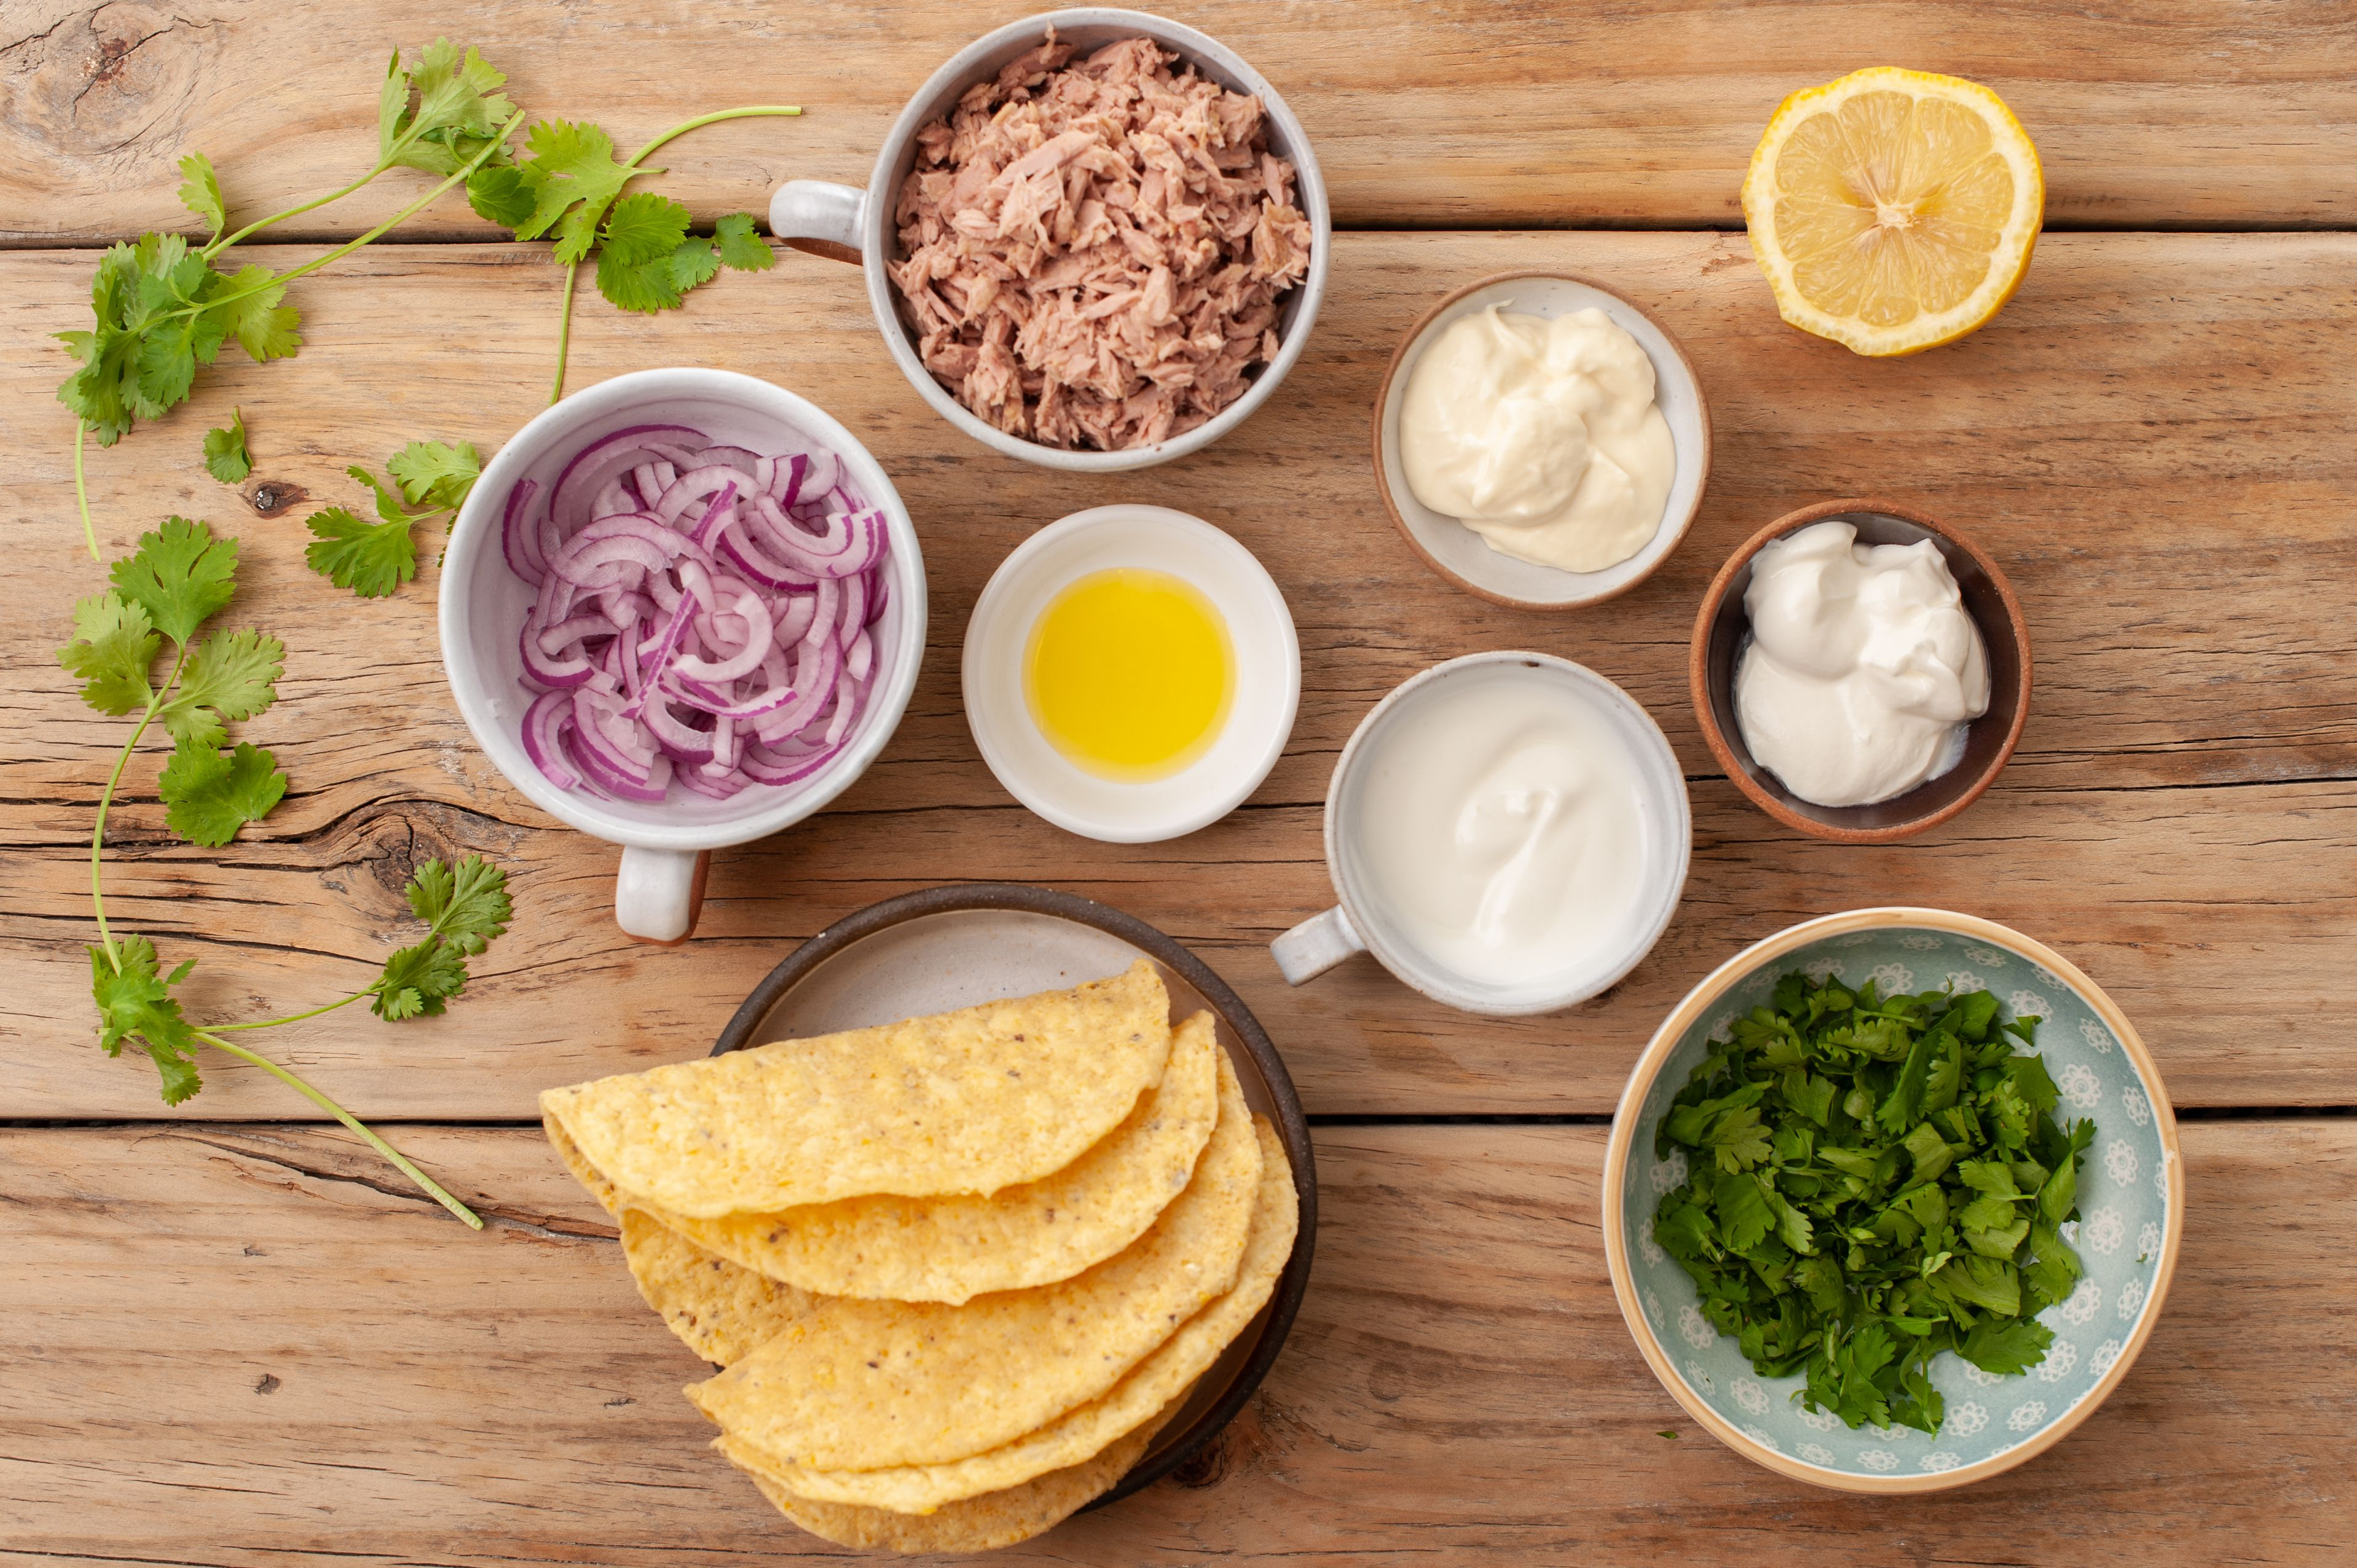 Ingredients for quick tuna taco